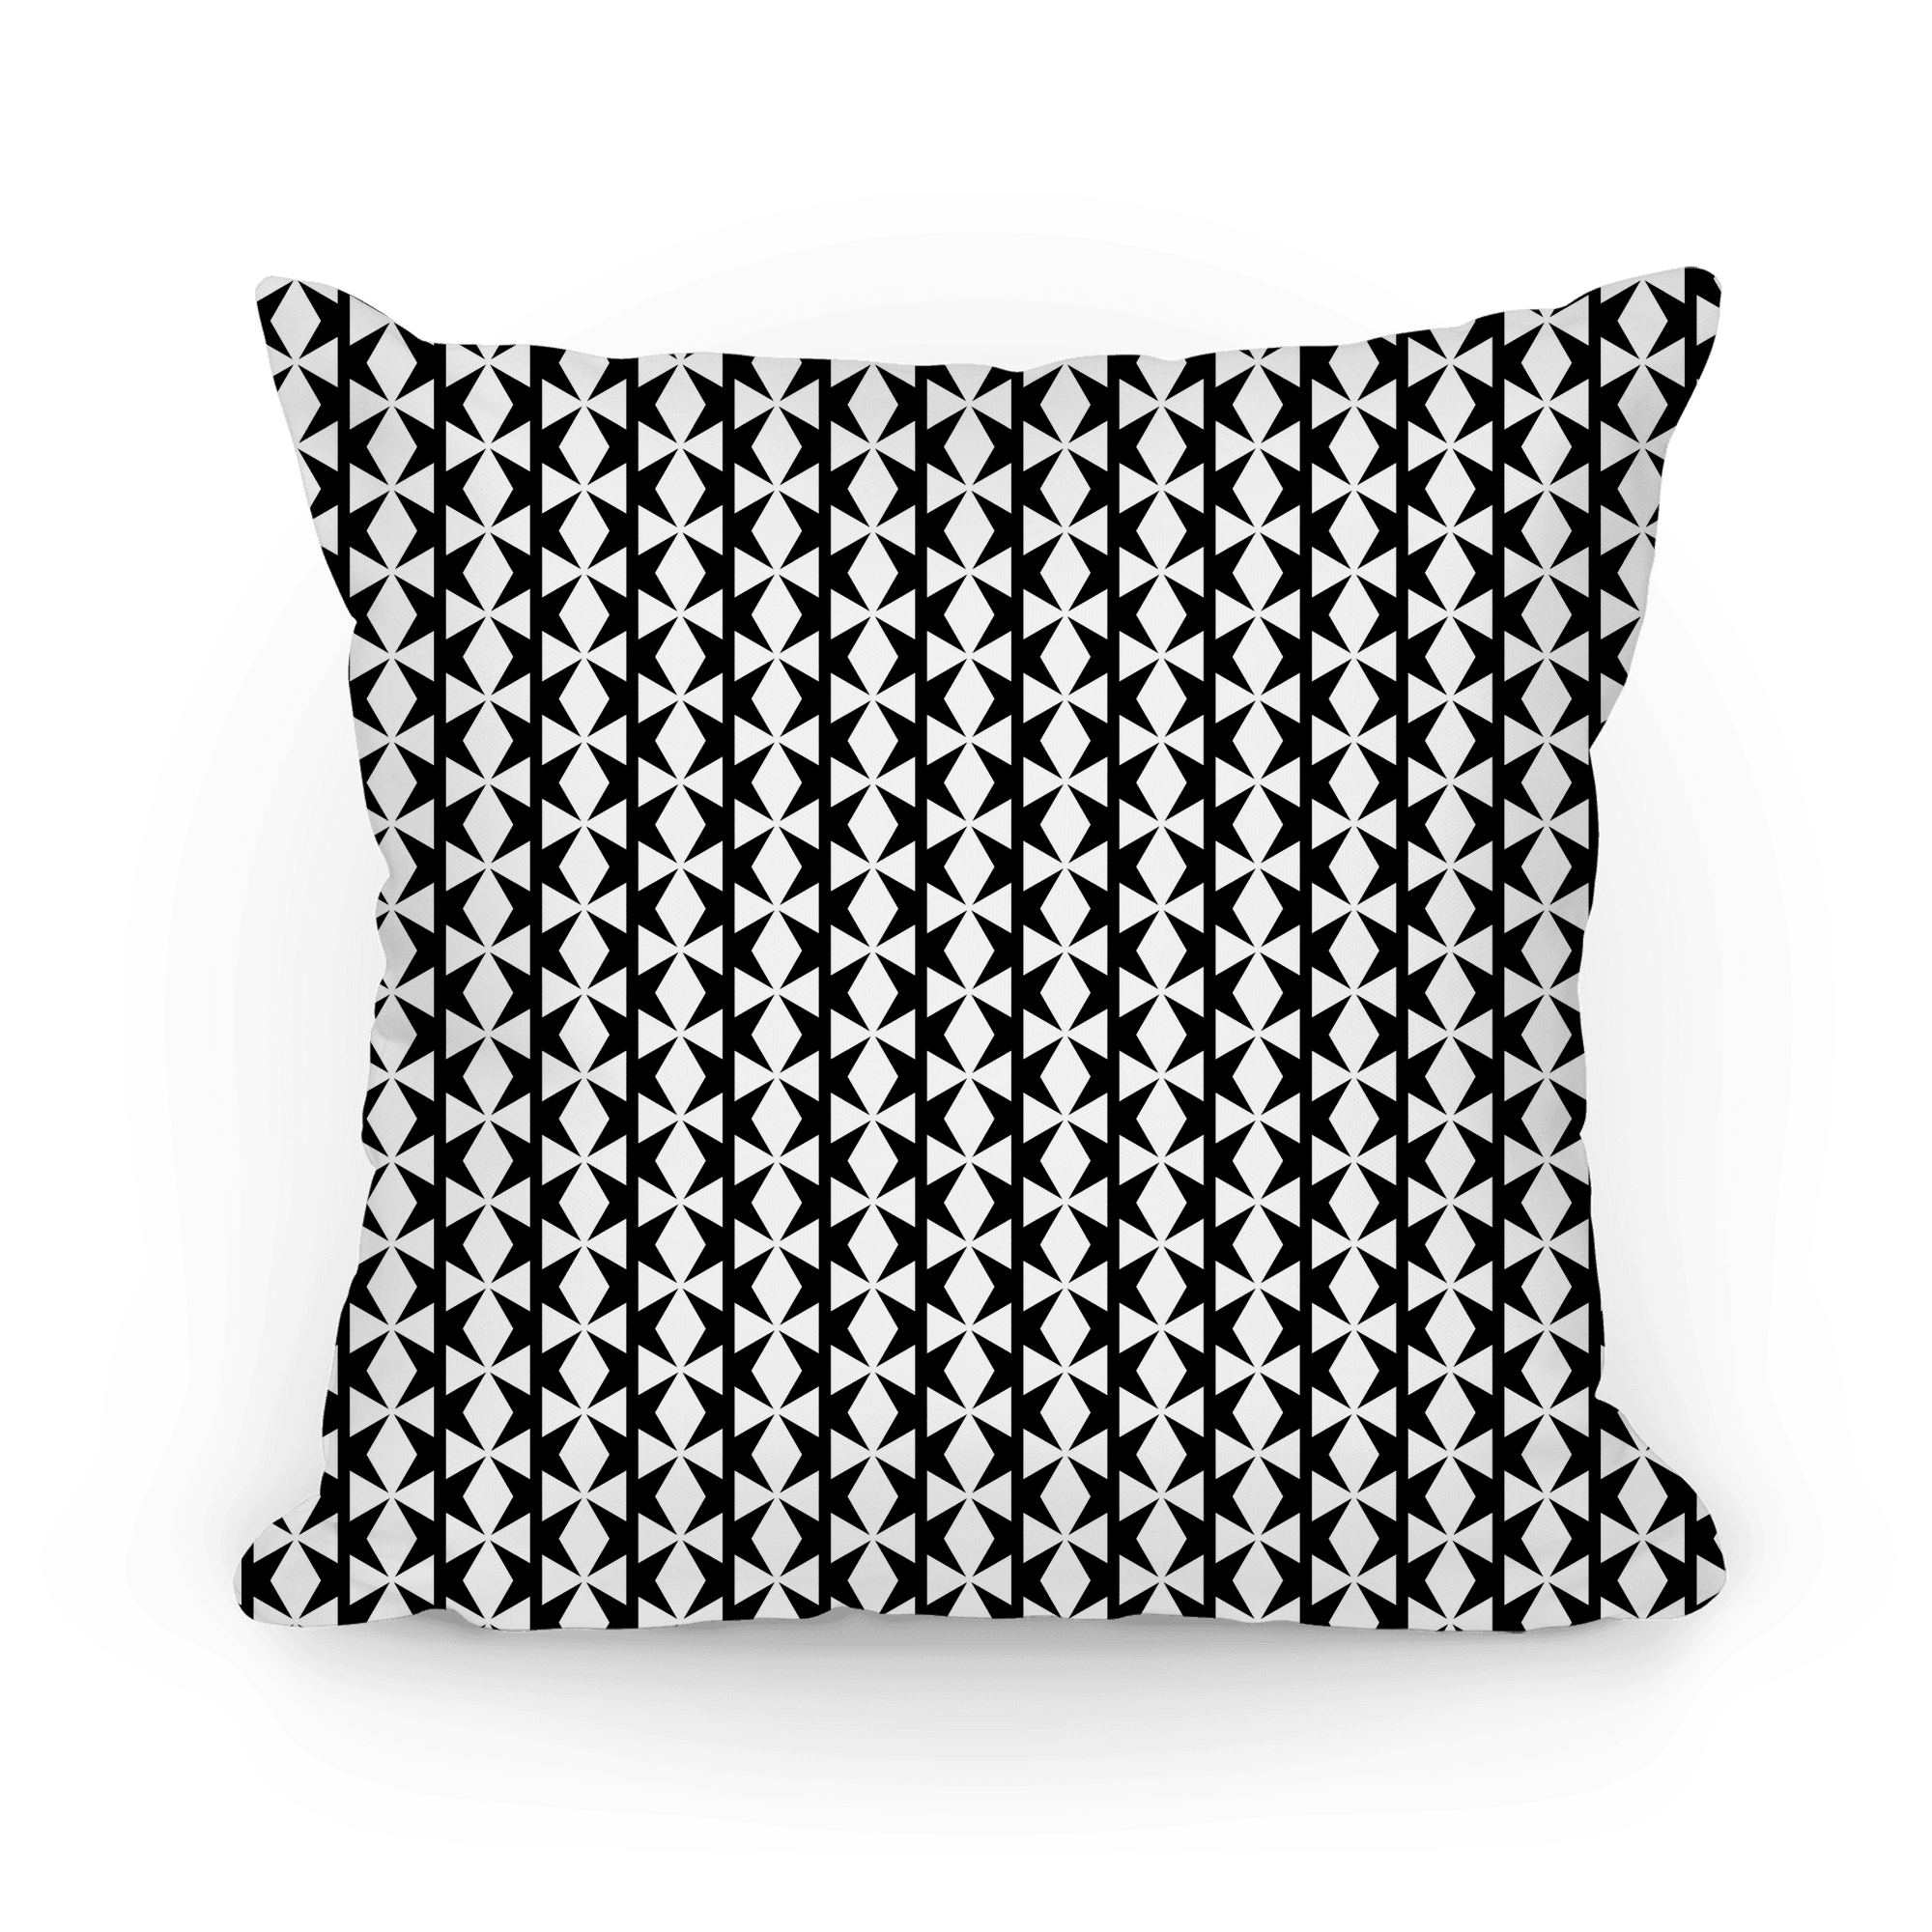 Black And White Geometric Pattern Pillows Lookhuman